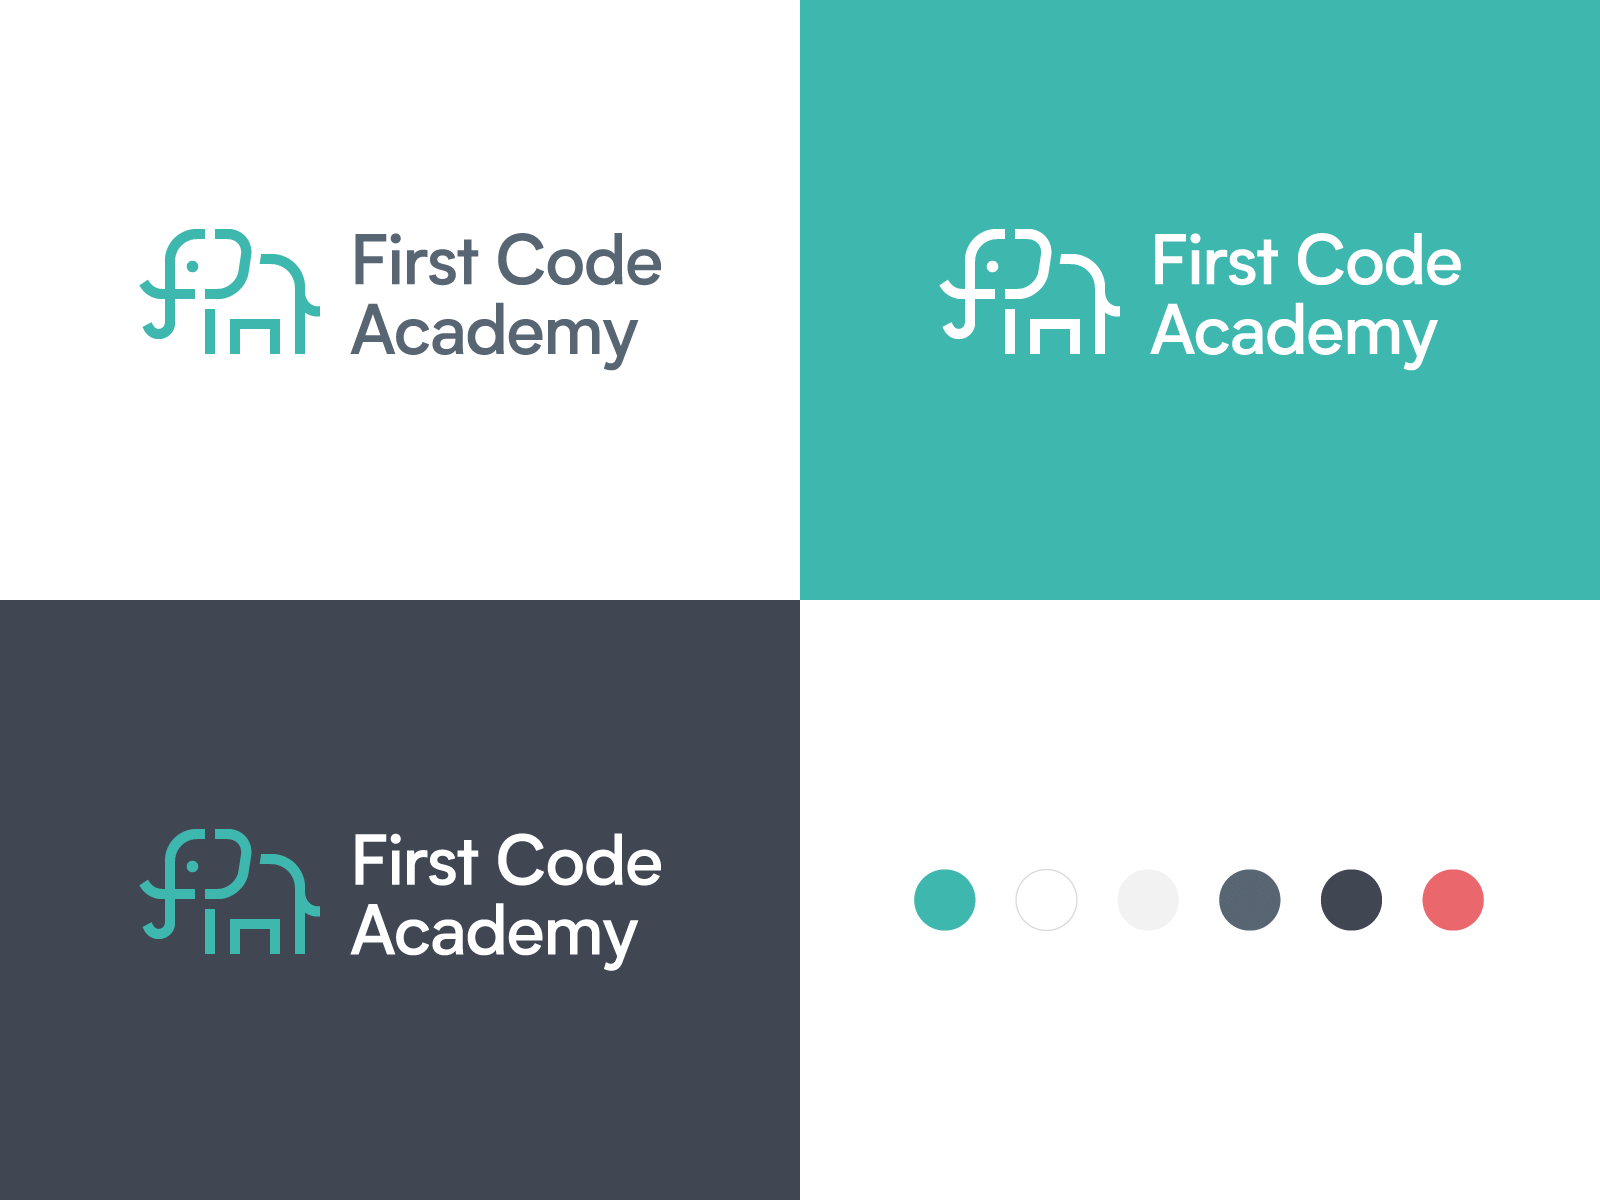 First code academy   full 2